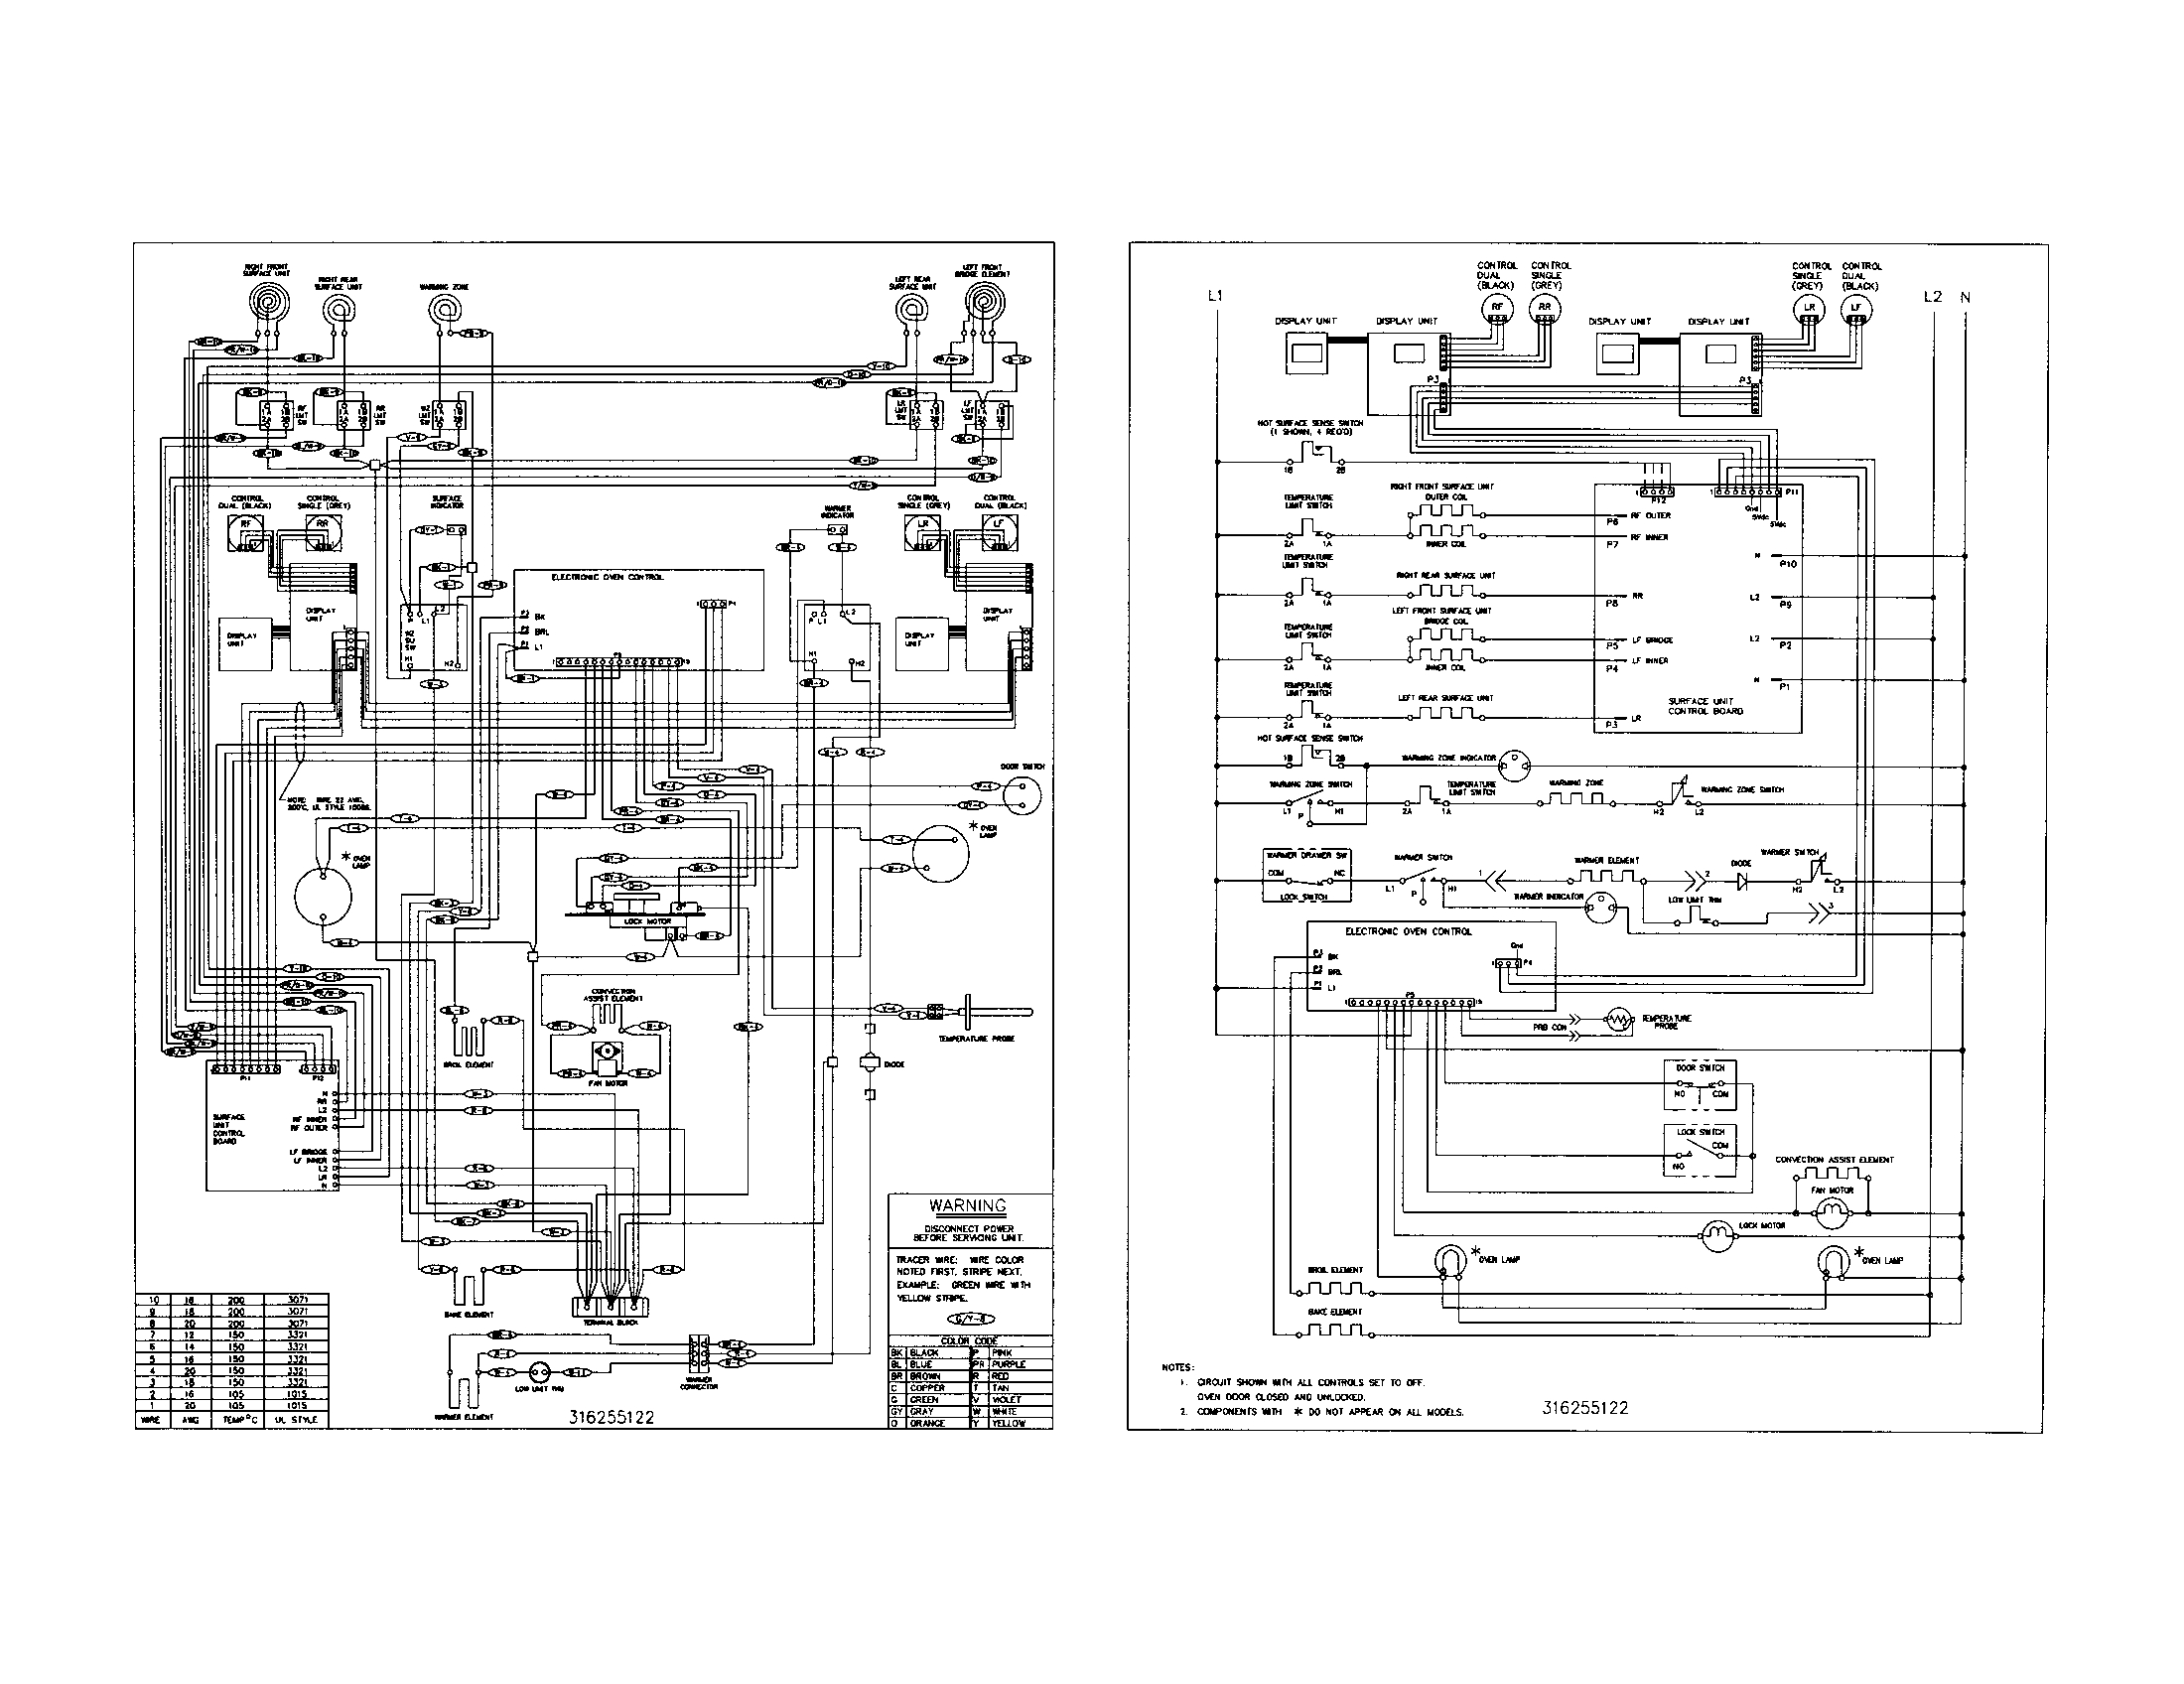 Unimac Wiring Diagram Data Gfci Outlet Circuit Washer Libraries Outlets In Series